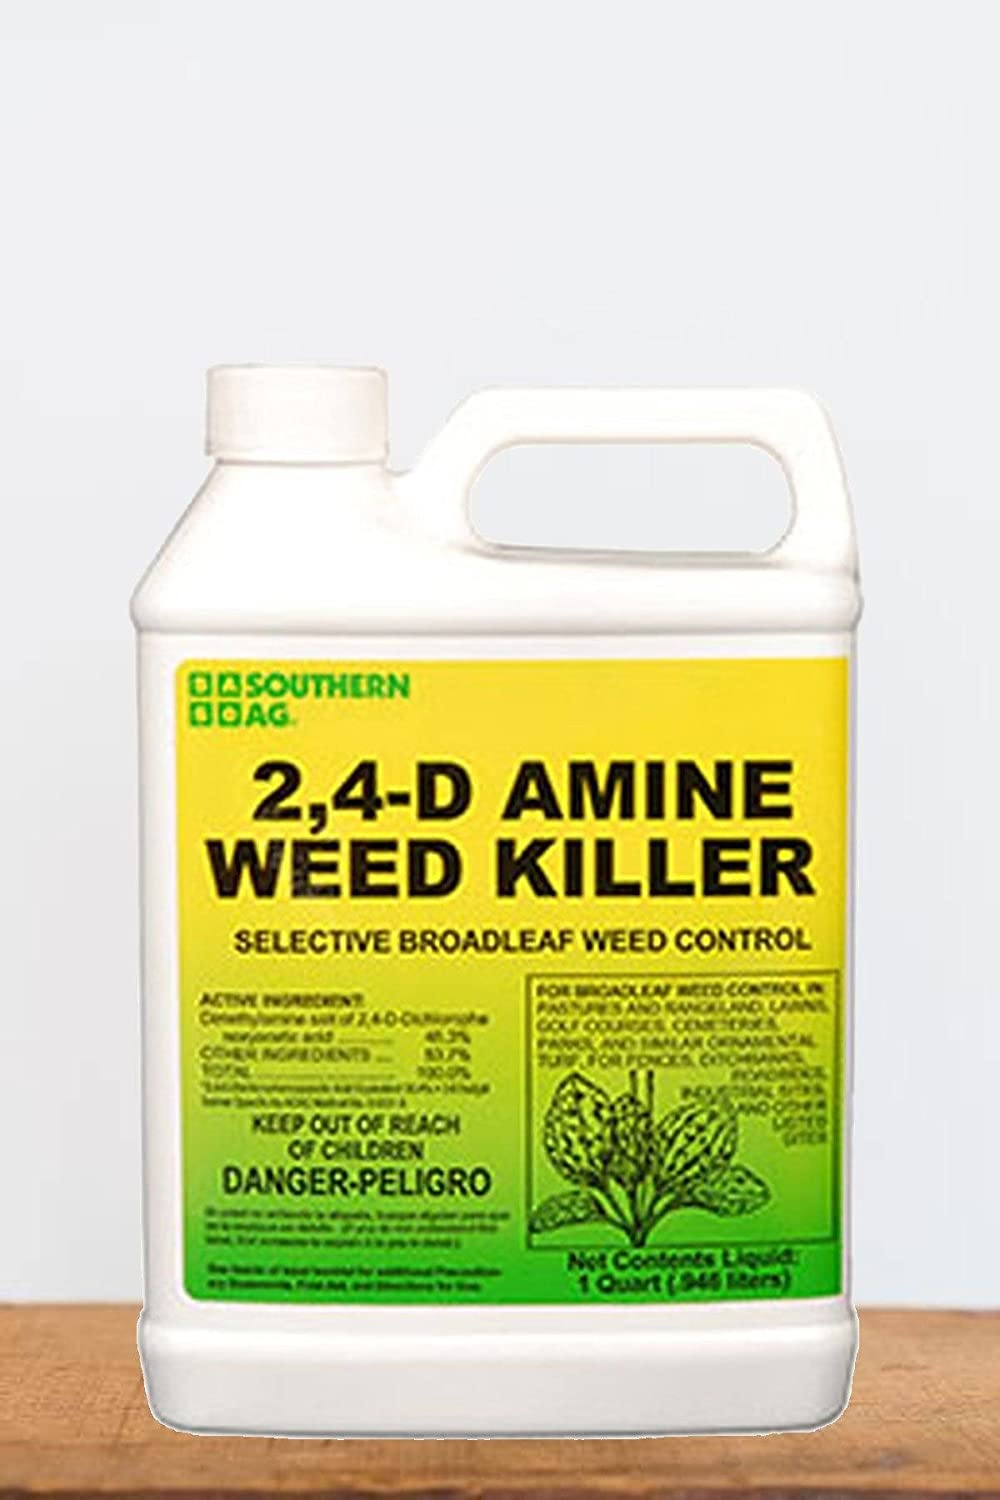 Southern Ag 2, 4 - D Amine Weed Killer (Control Broad-Leaf Weeds, Grass), 1 Quart